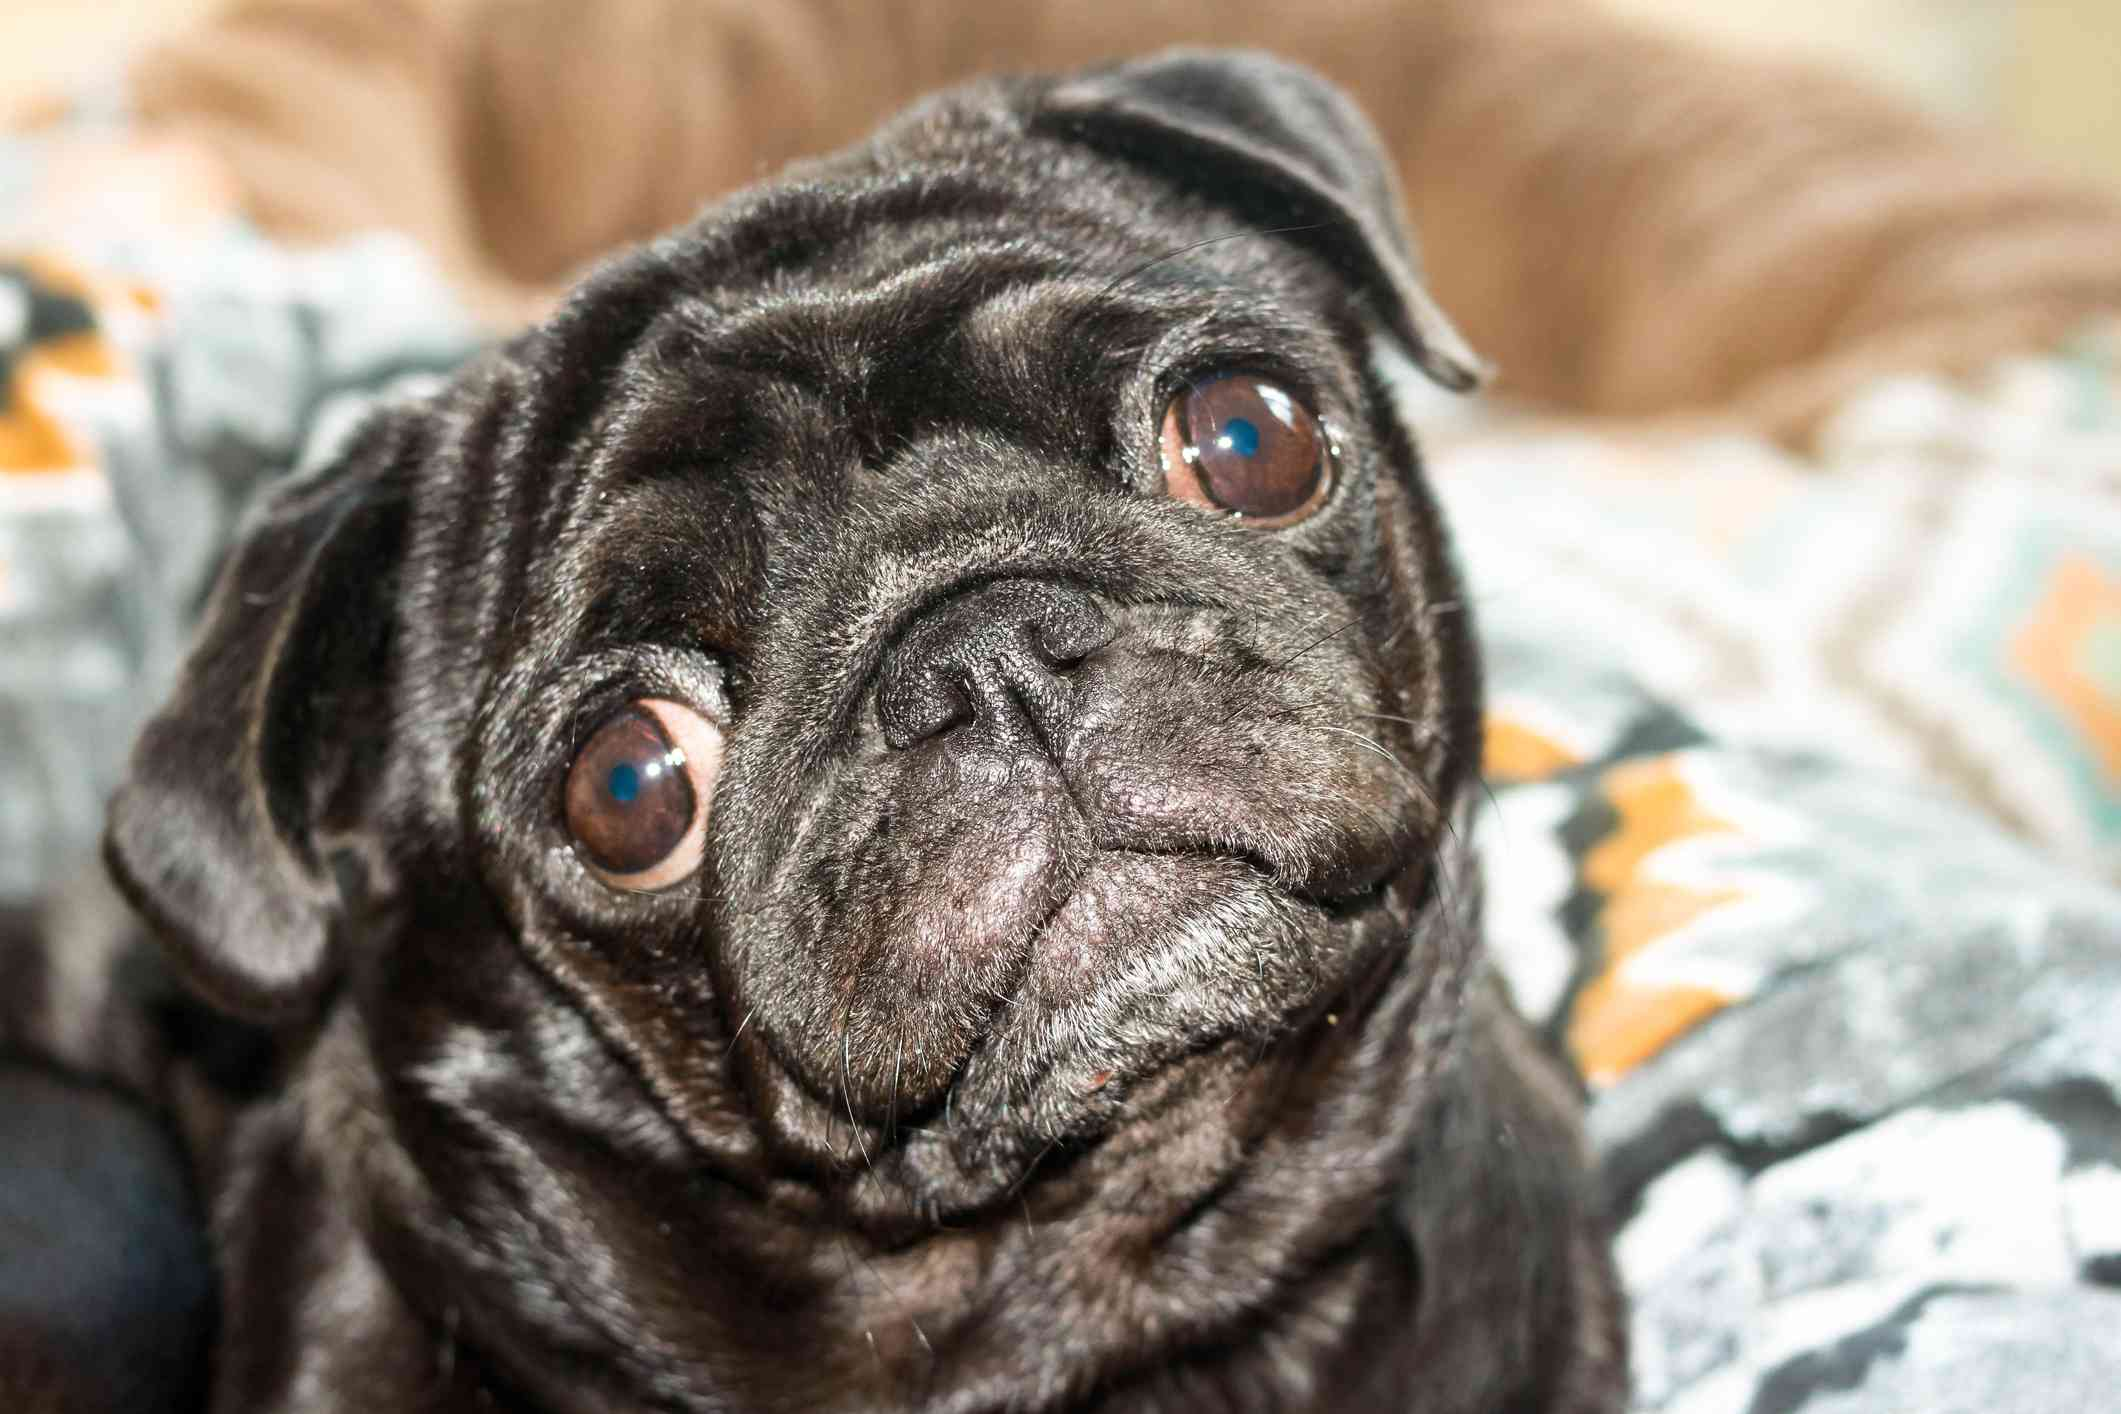 A pug tilting its head looking into the camera.